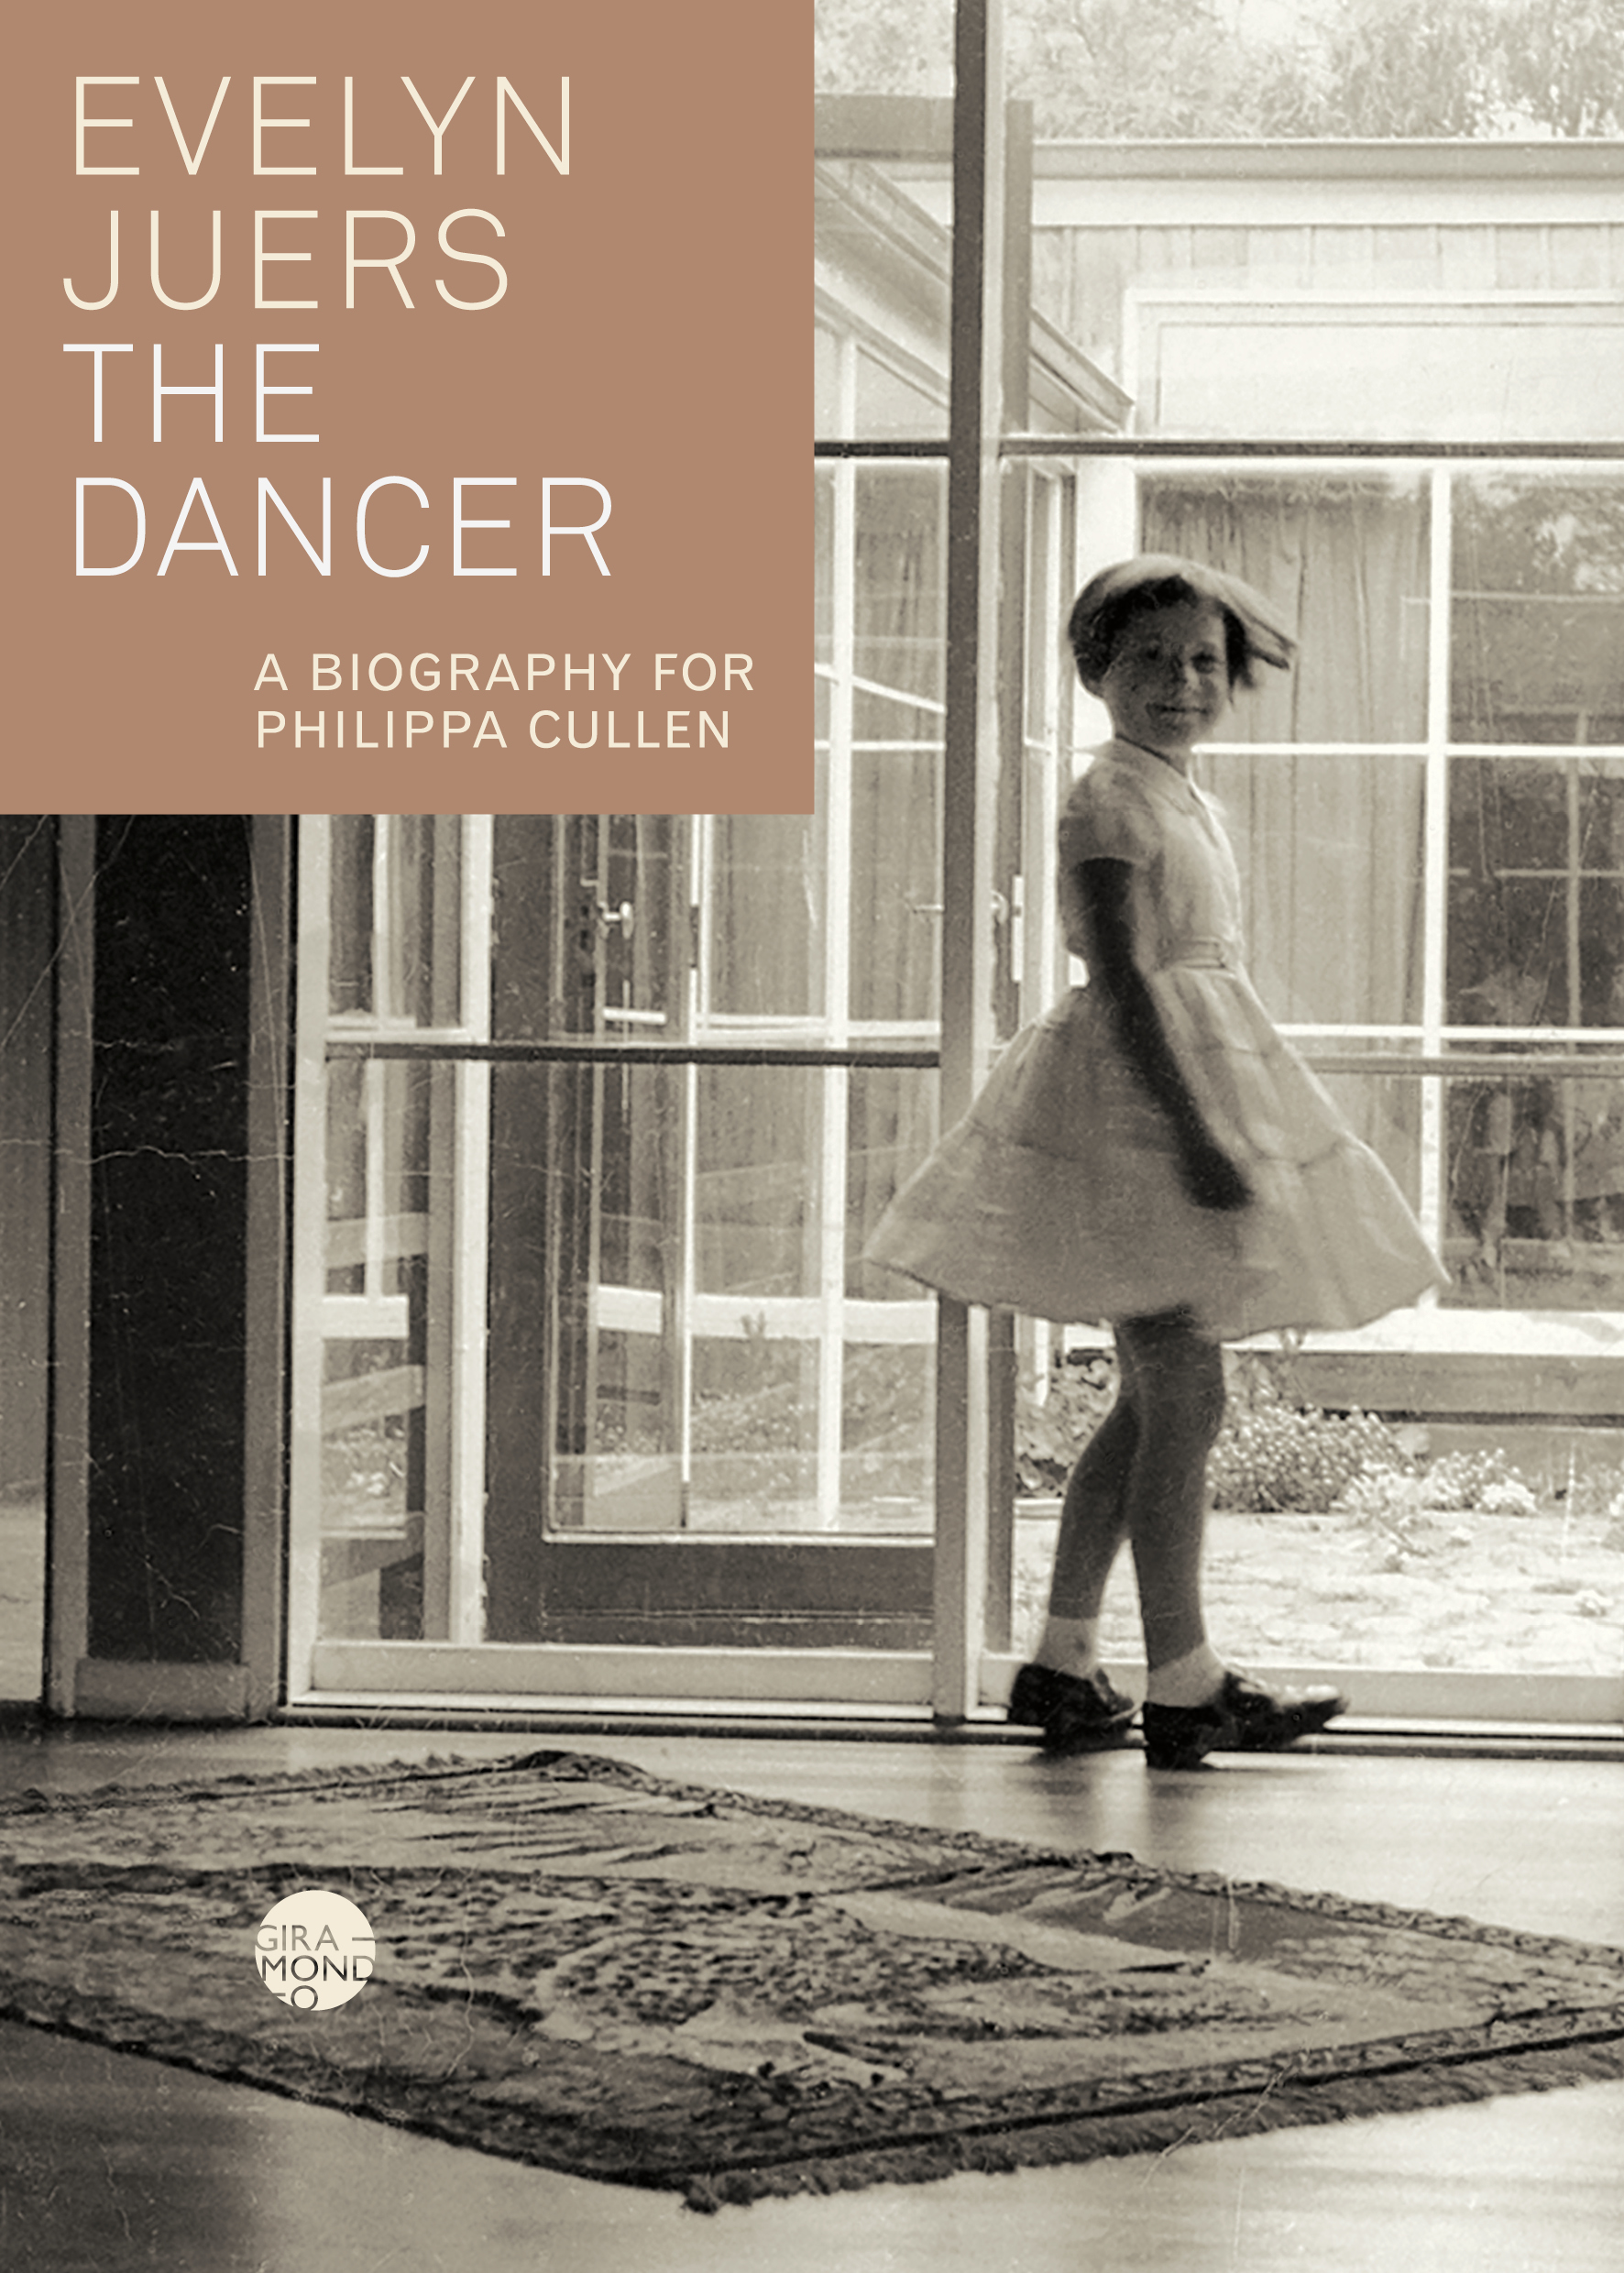 The Dancer: A Biography for Philippa Cullen by Evelyn Juers